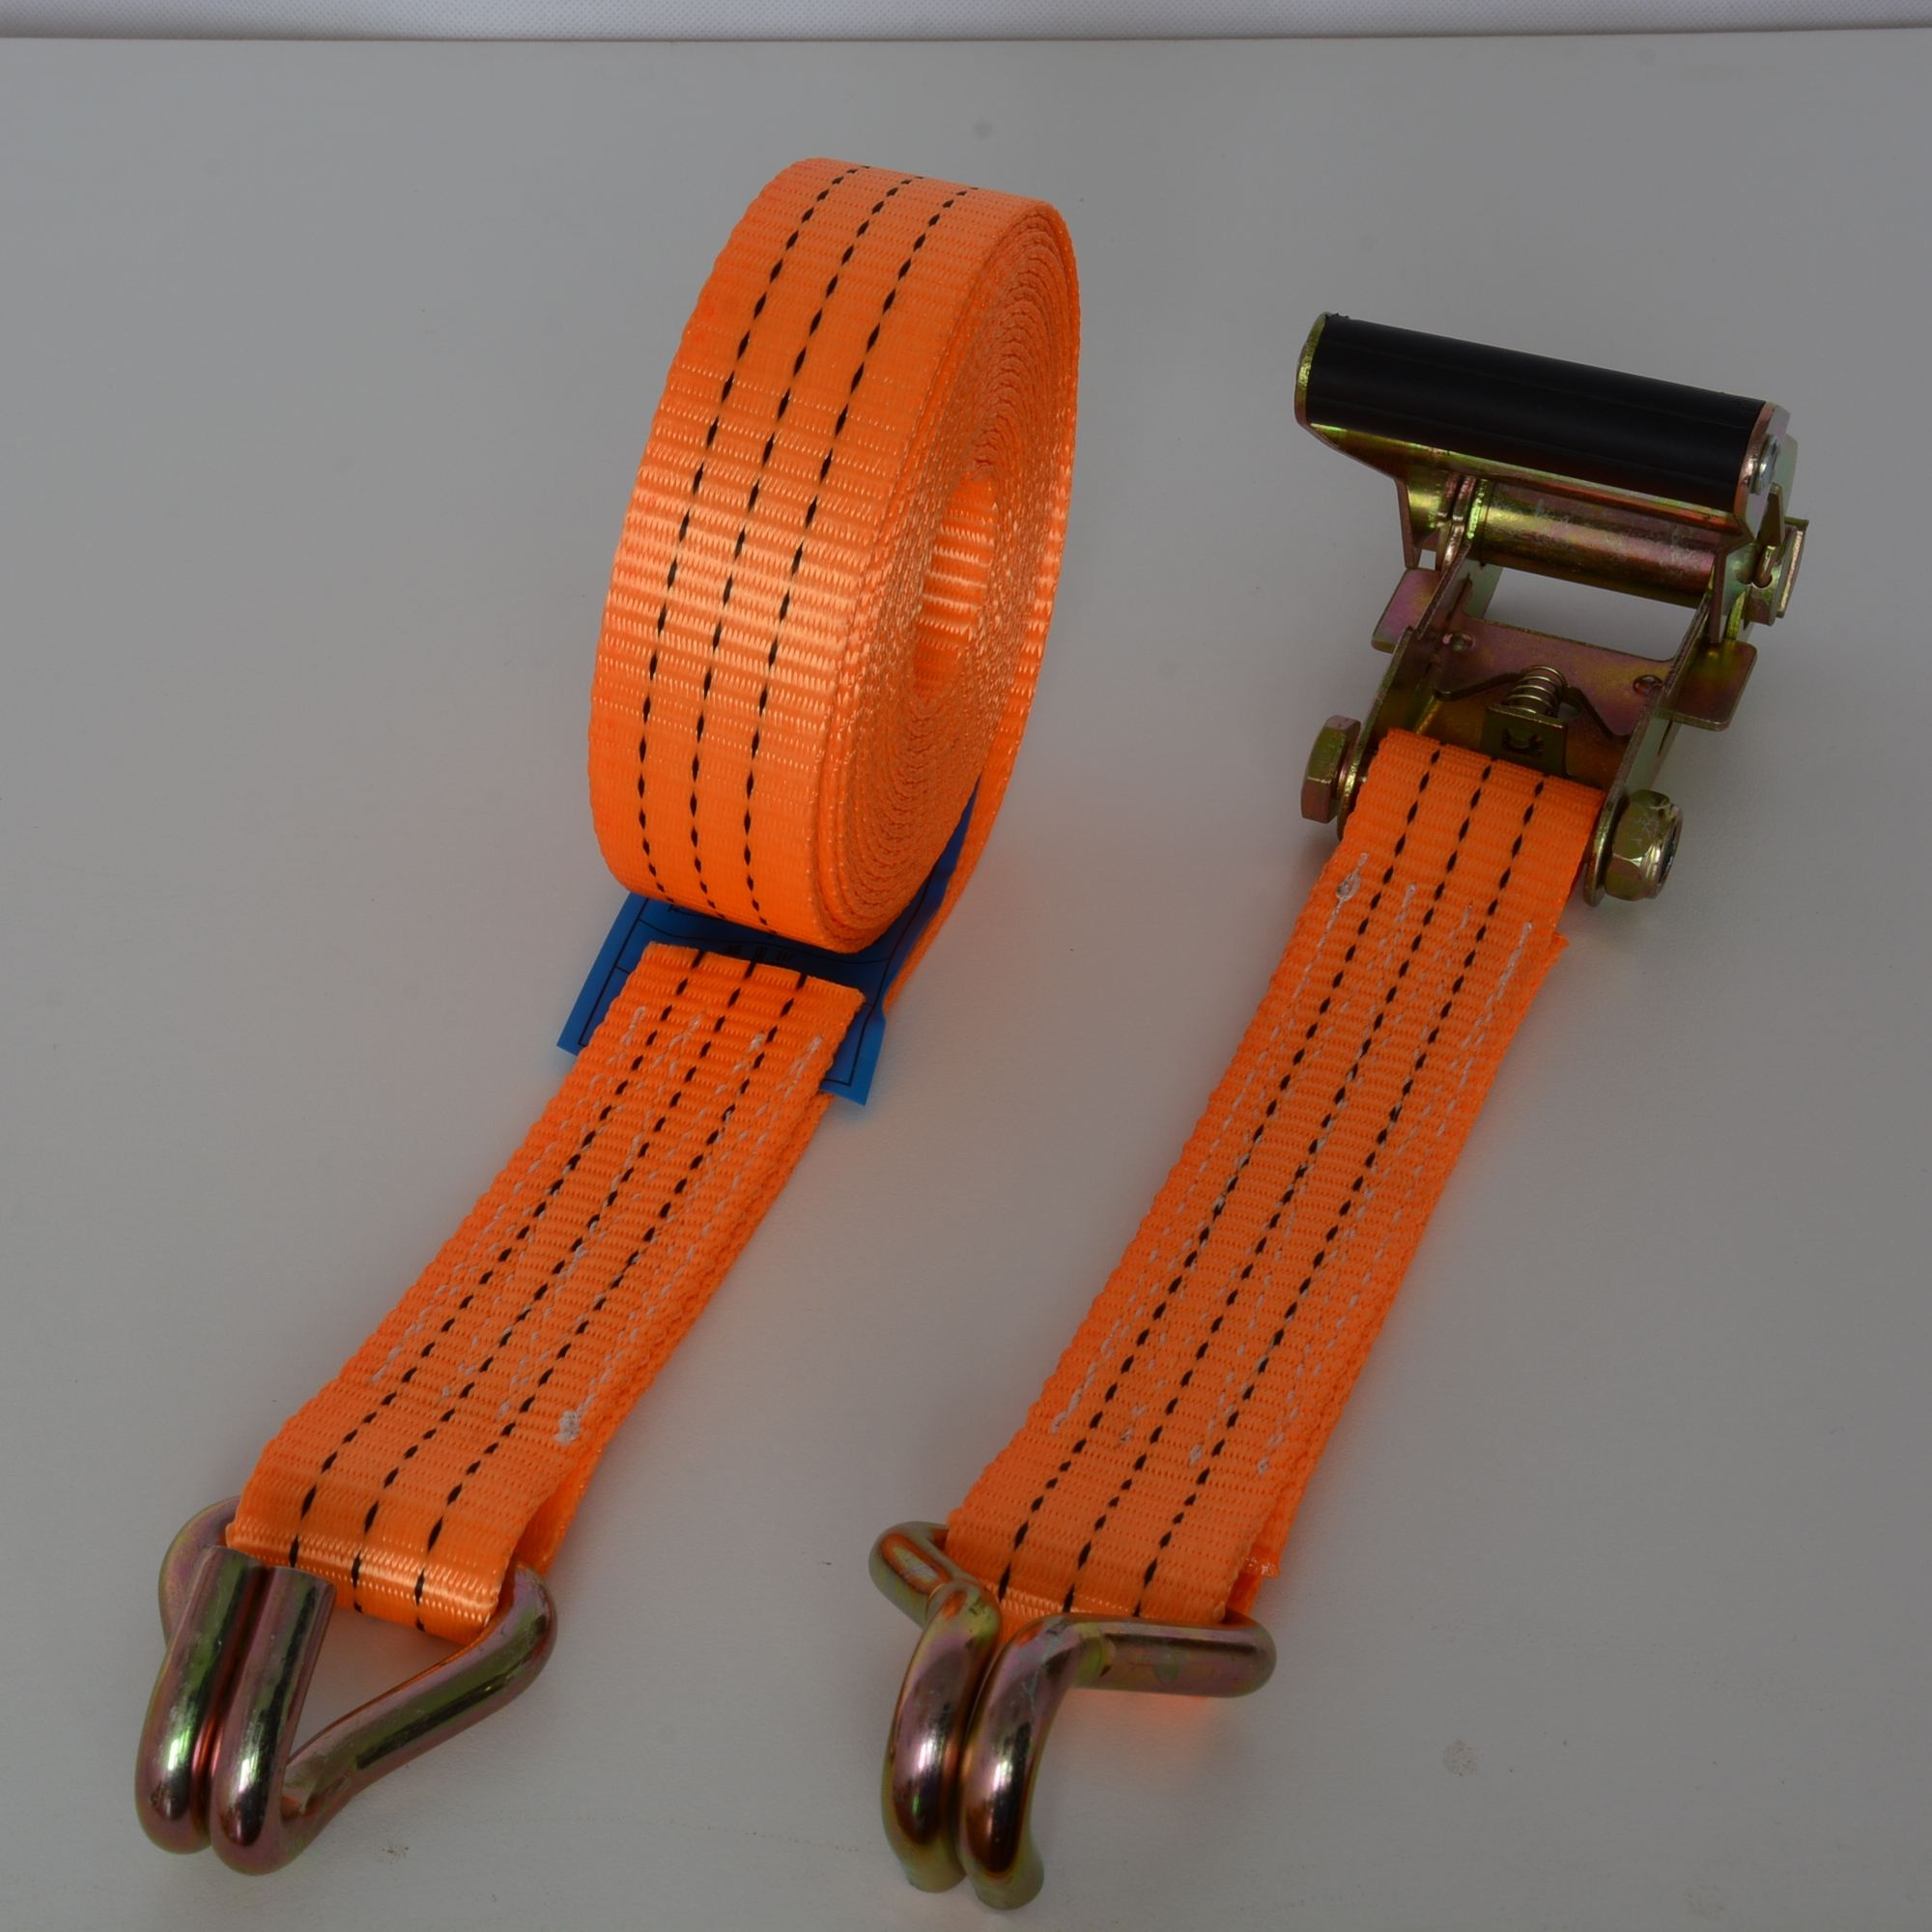 50mm x 10m ratchet strap tie down, rachet tie down